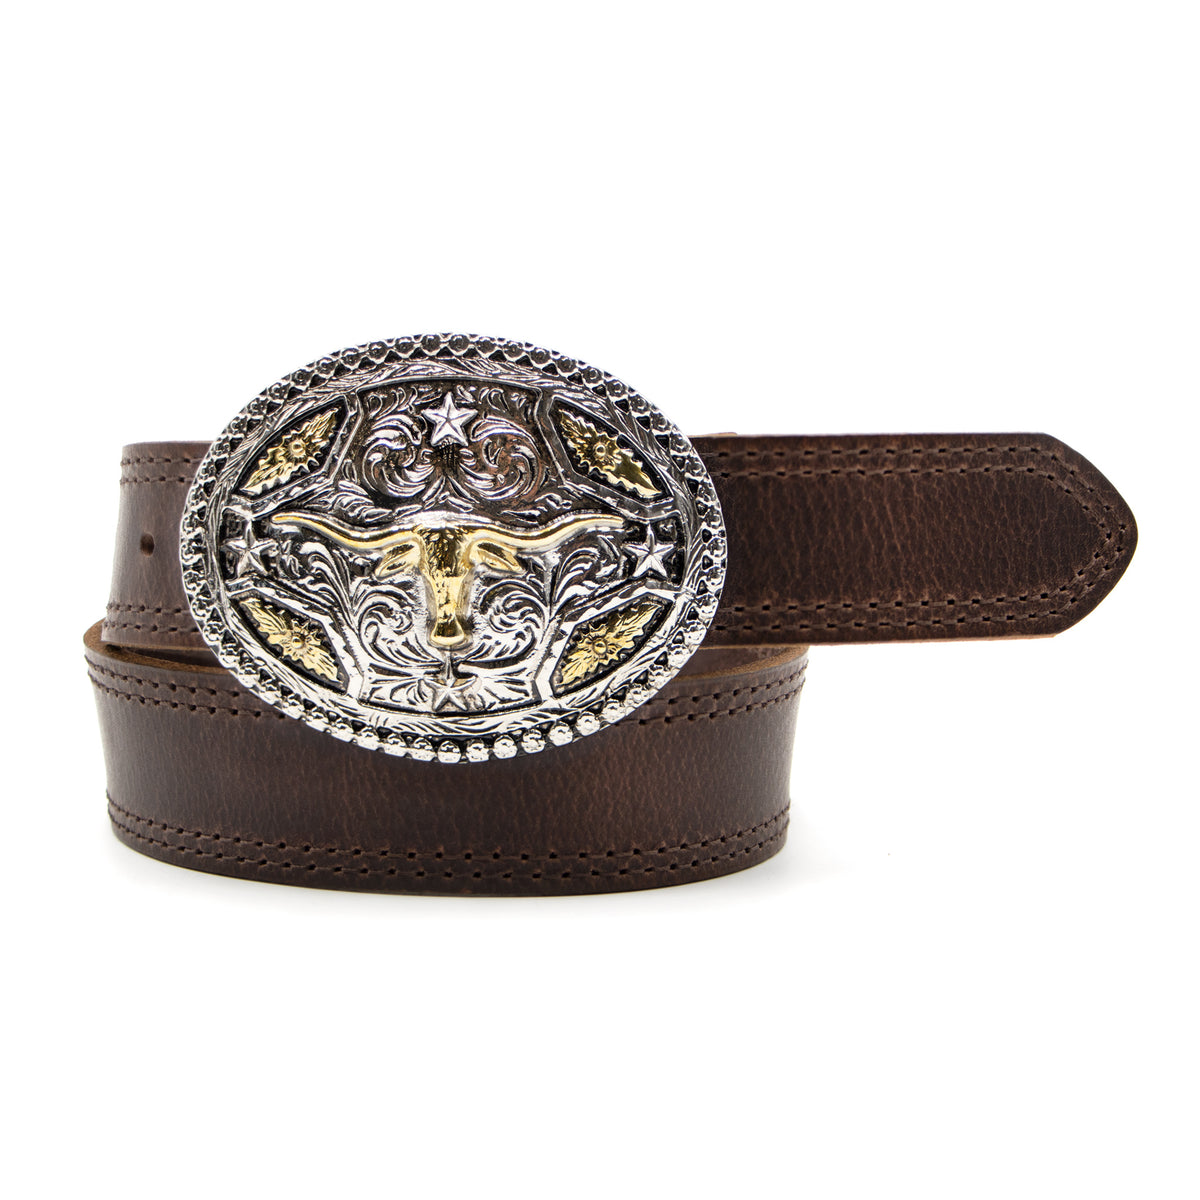 "Kids' 1 1/4"" Longhorn Buckle Belt"